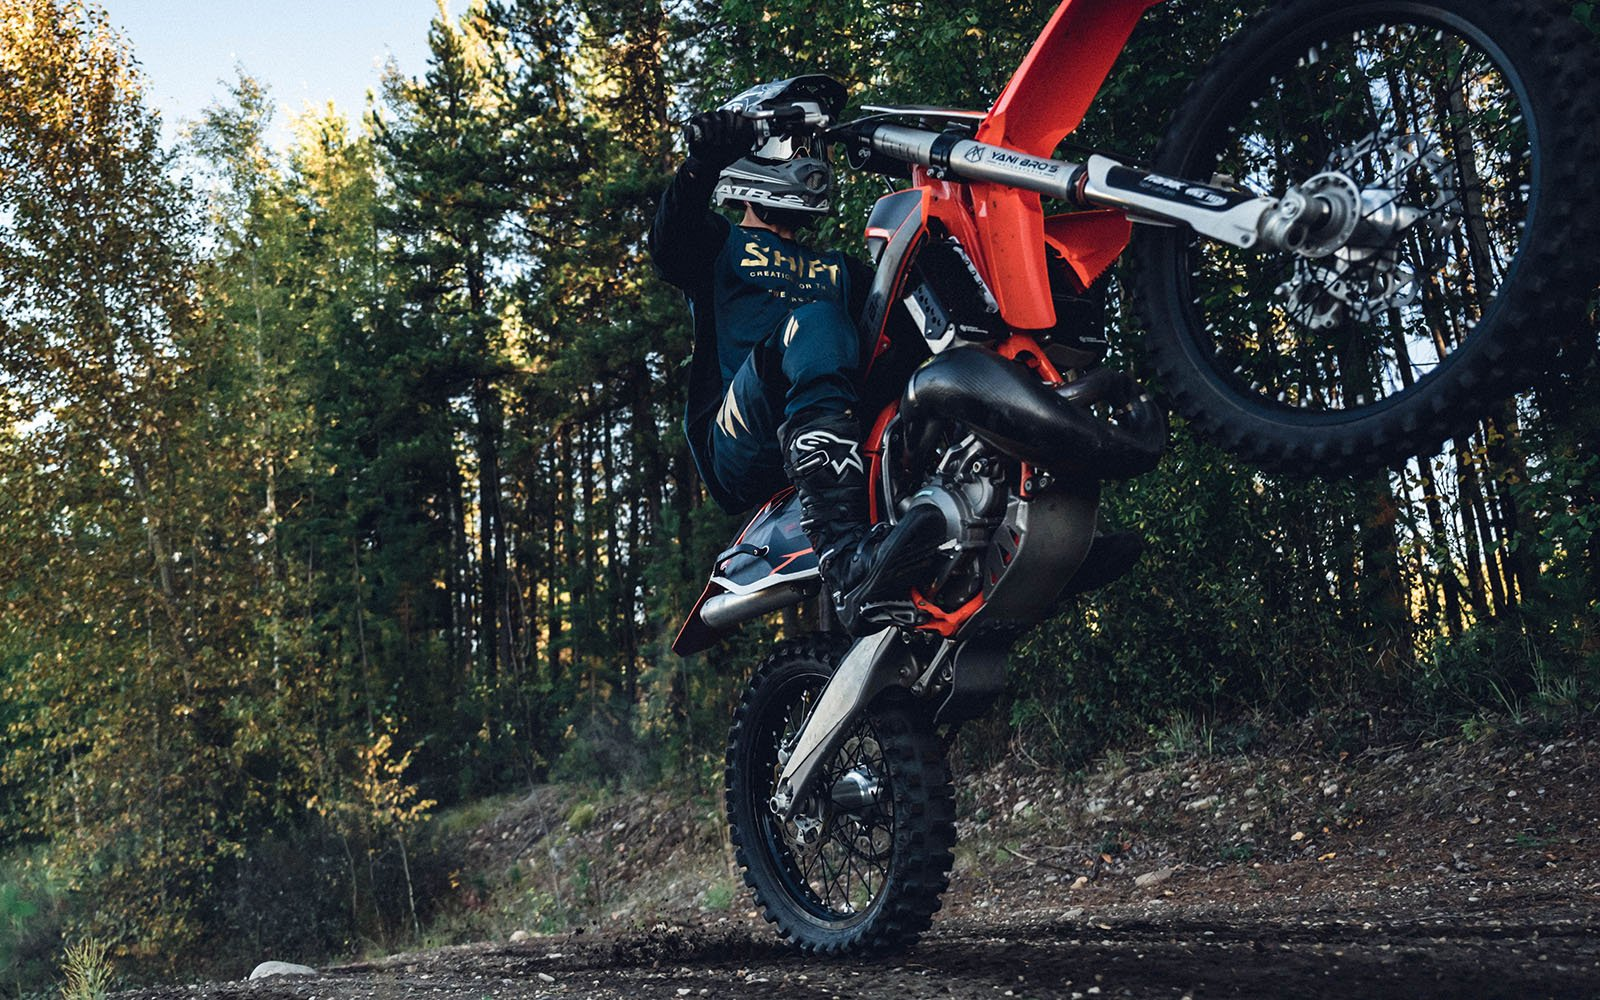 Tripak Super Lubricants Off-Road & Recreation Dirtbike